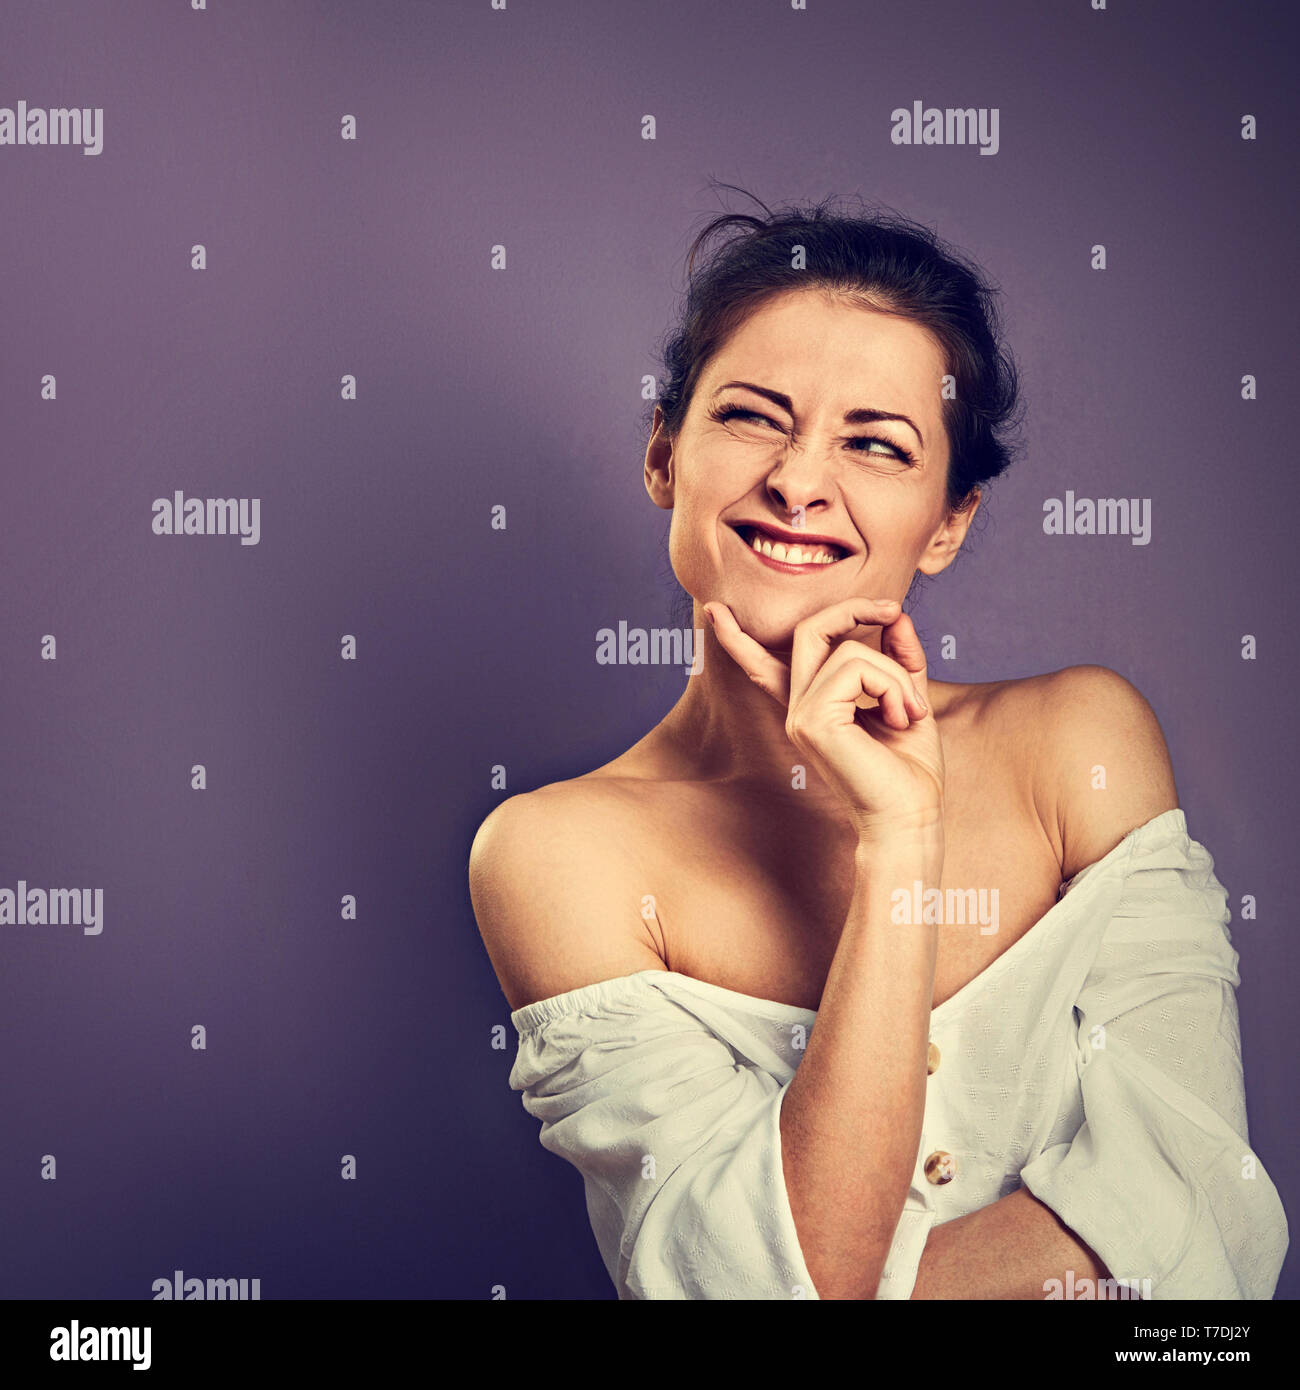 Beautiful positive grimacing fun woman with hand under the face thinking and looking up in white shirt on purple background with empty copy space. Ton - Stock Image